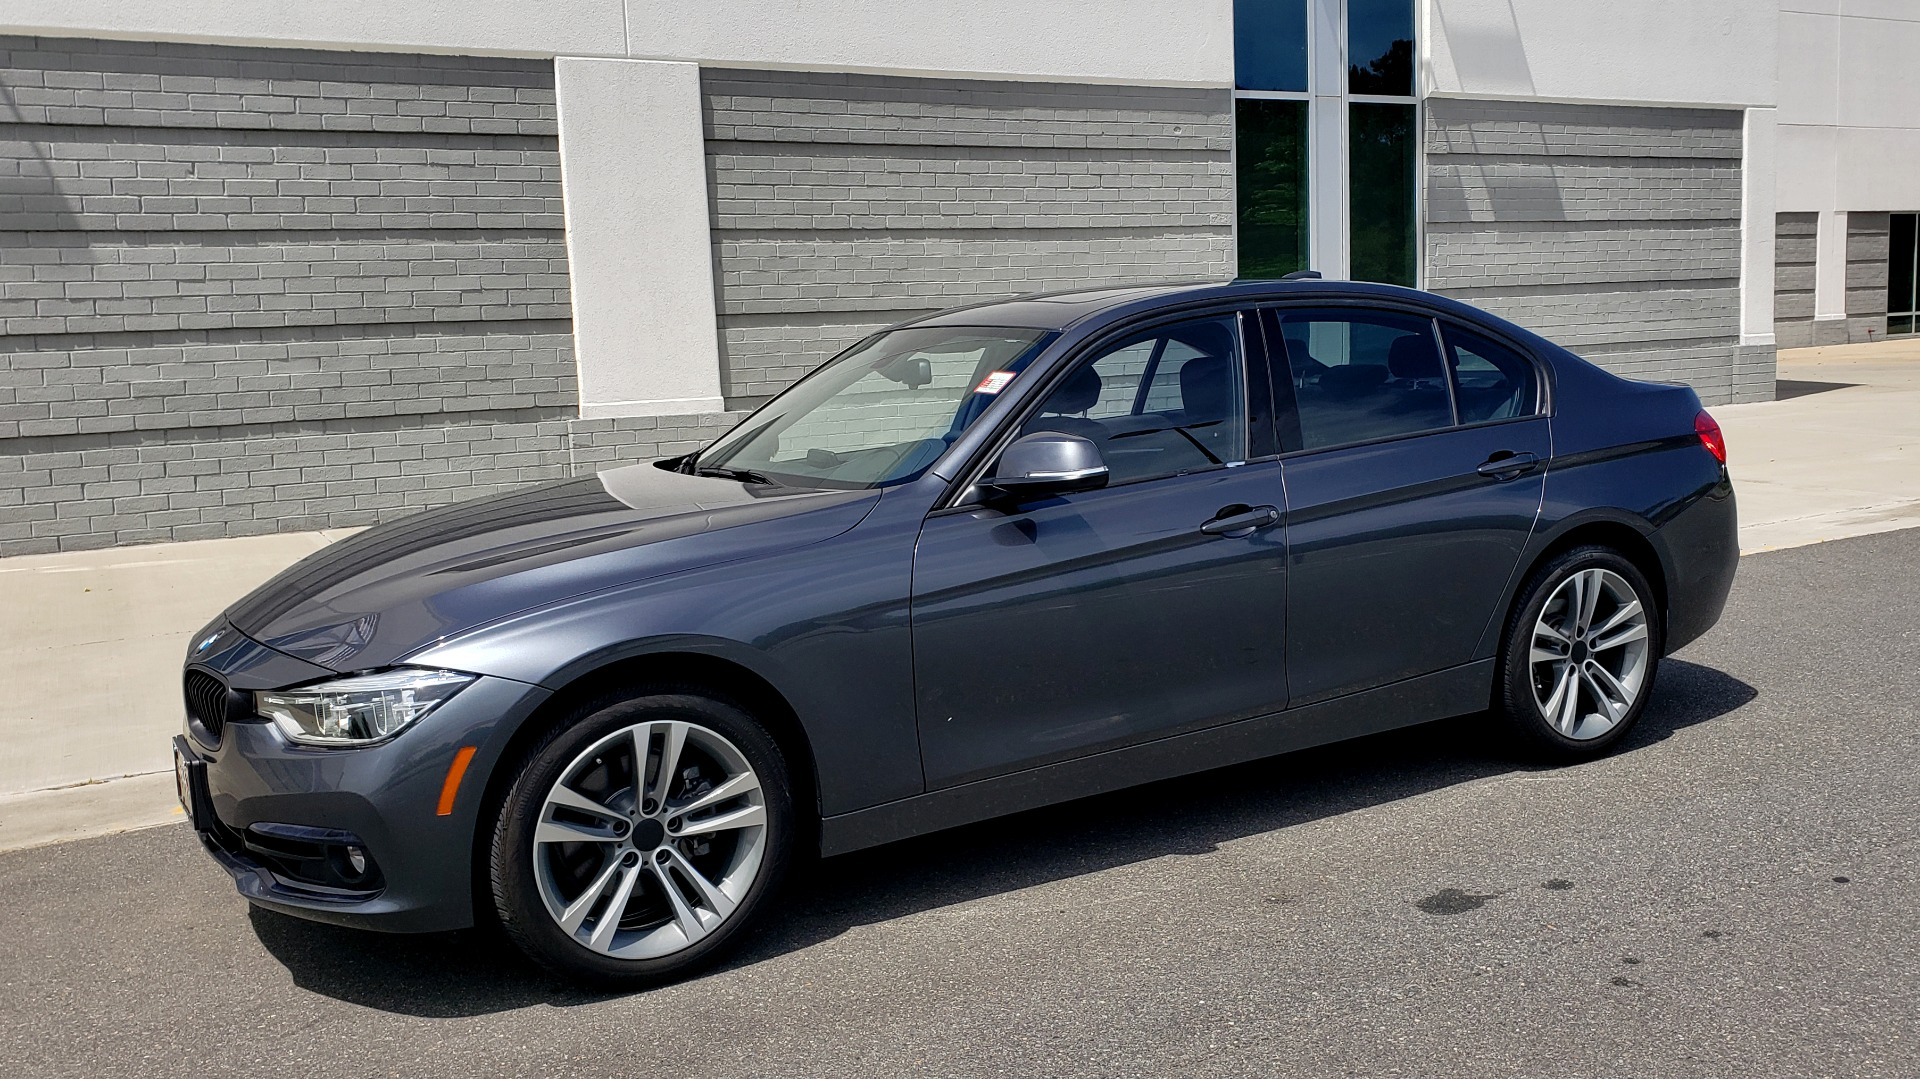 Used 2018 BMW 3 SERIES 330I XDRIVE / CONV PKG / SUNROOF / SPORT STS / HTD STS / REARVIEW for sale $28,495 at Formula Imports in Charlotte NC 28227 2